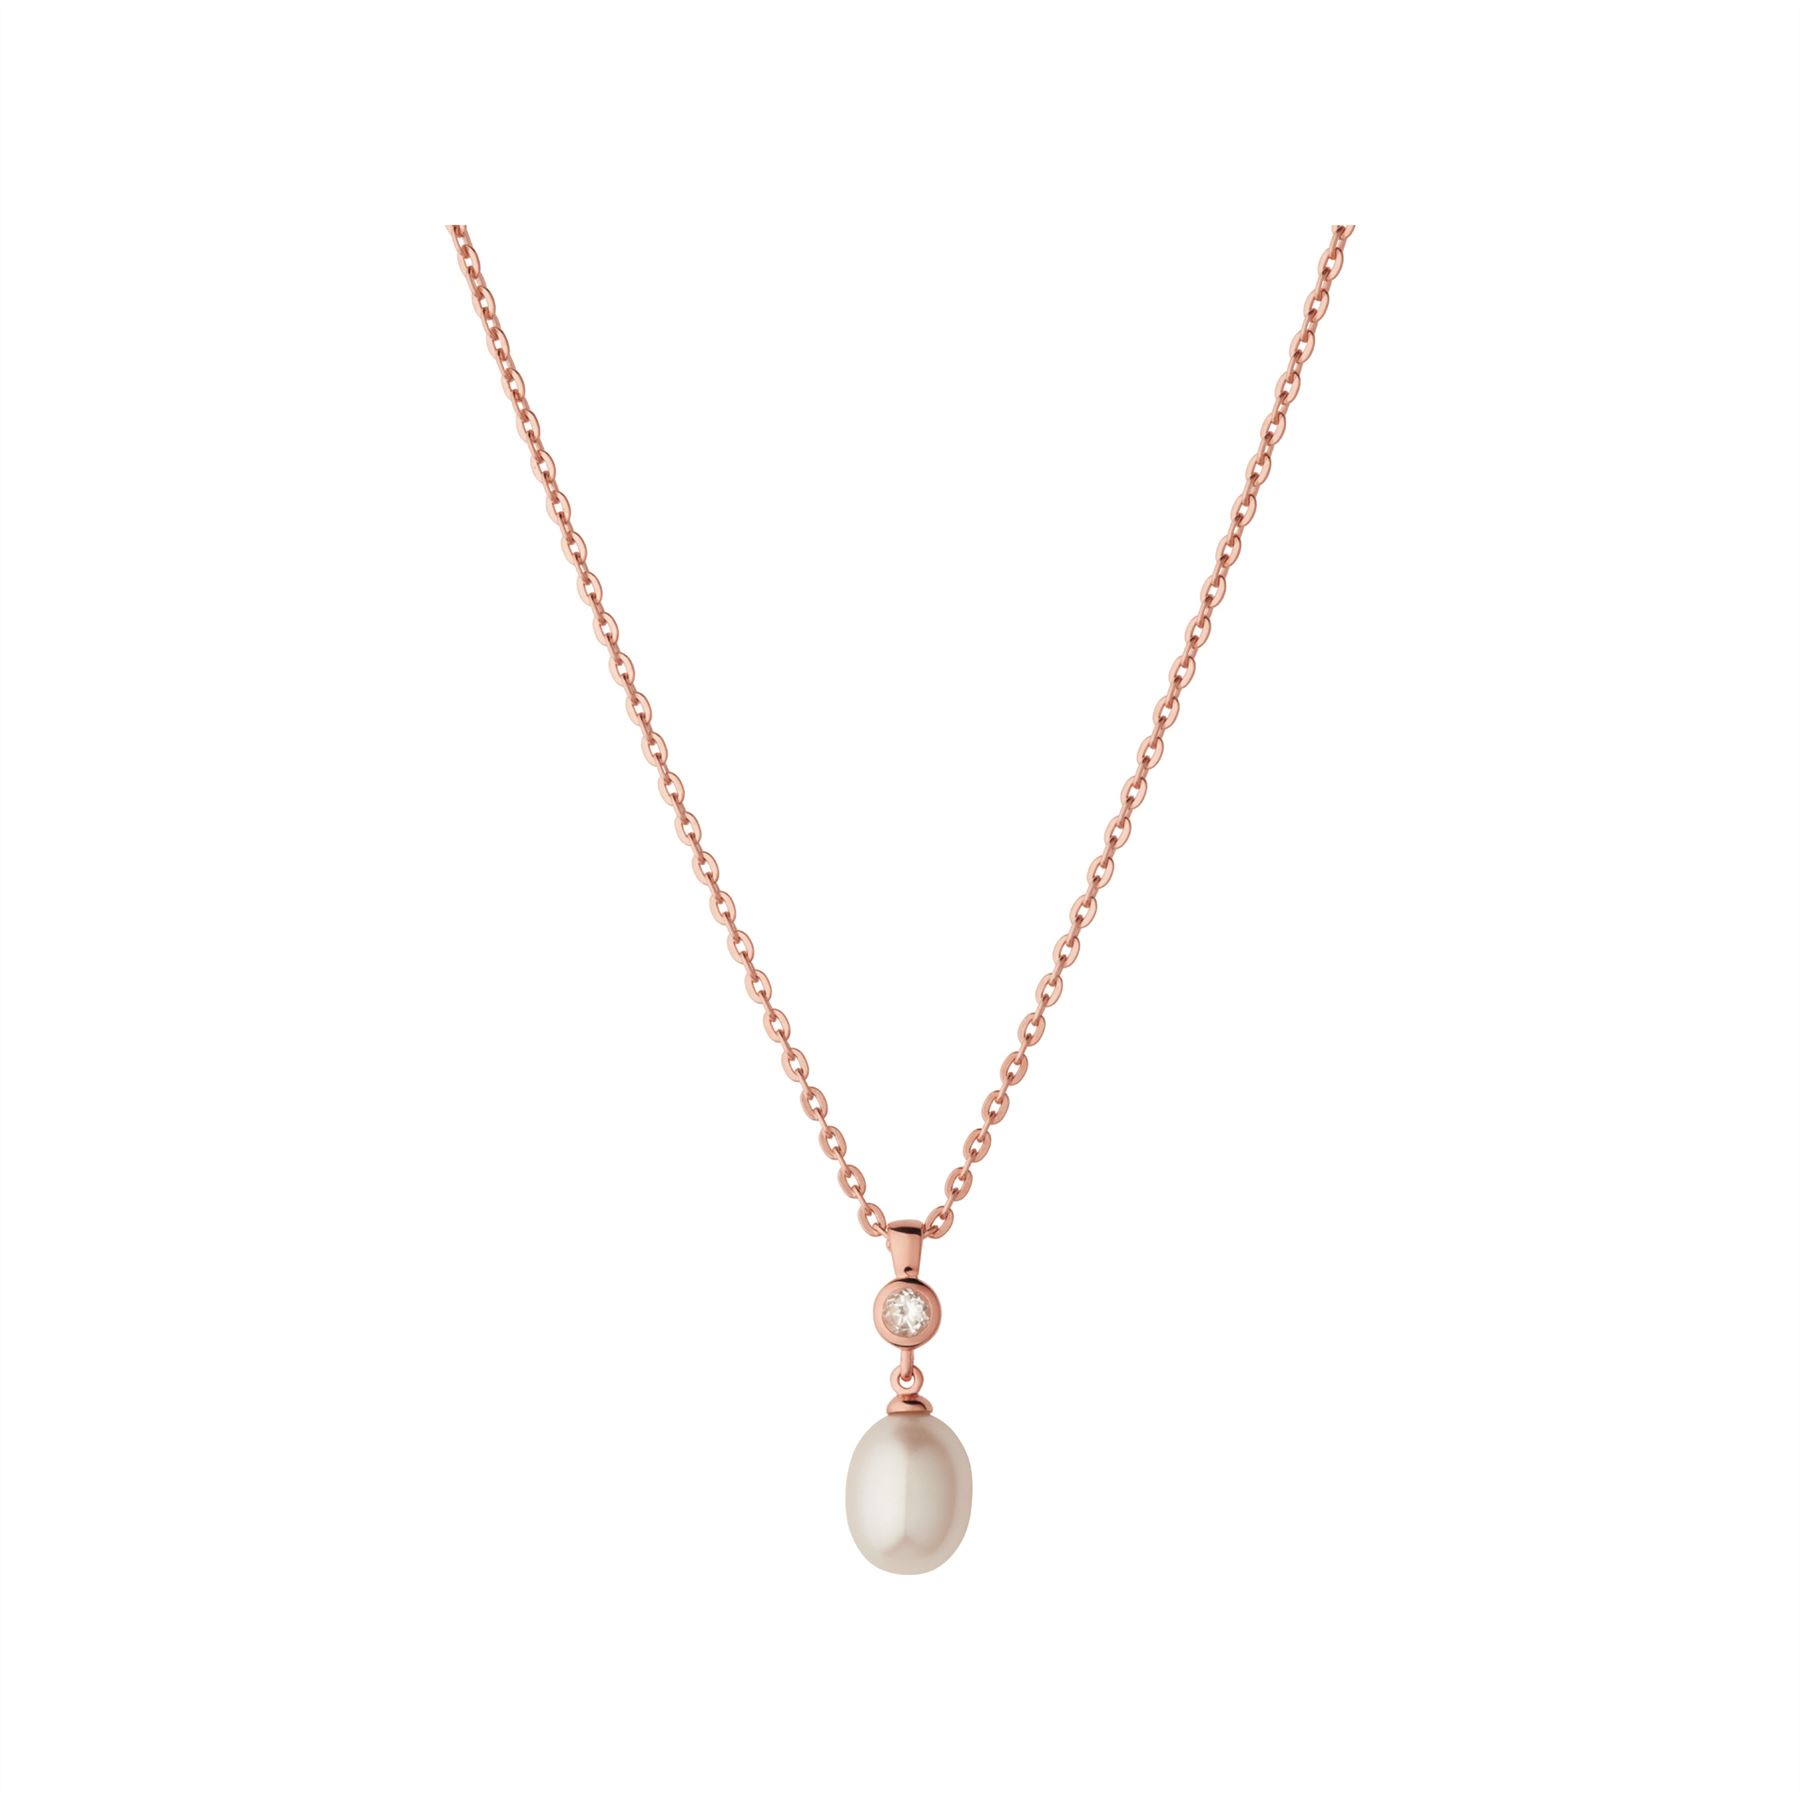 Links of london rose gold fine necklaces pendants ebay links of london ladies pearl rose gold vermeil white topaz necklace jewellery mozeypictures Choice Image